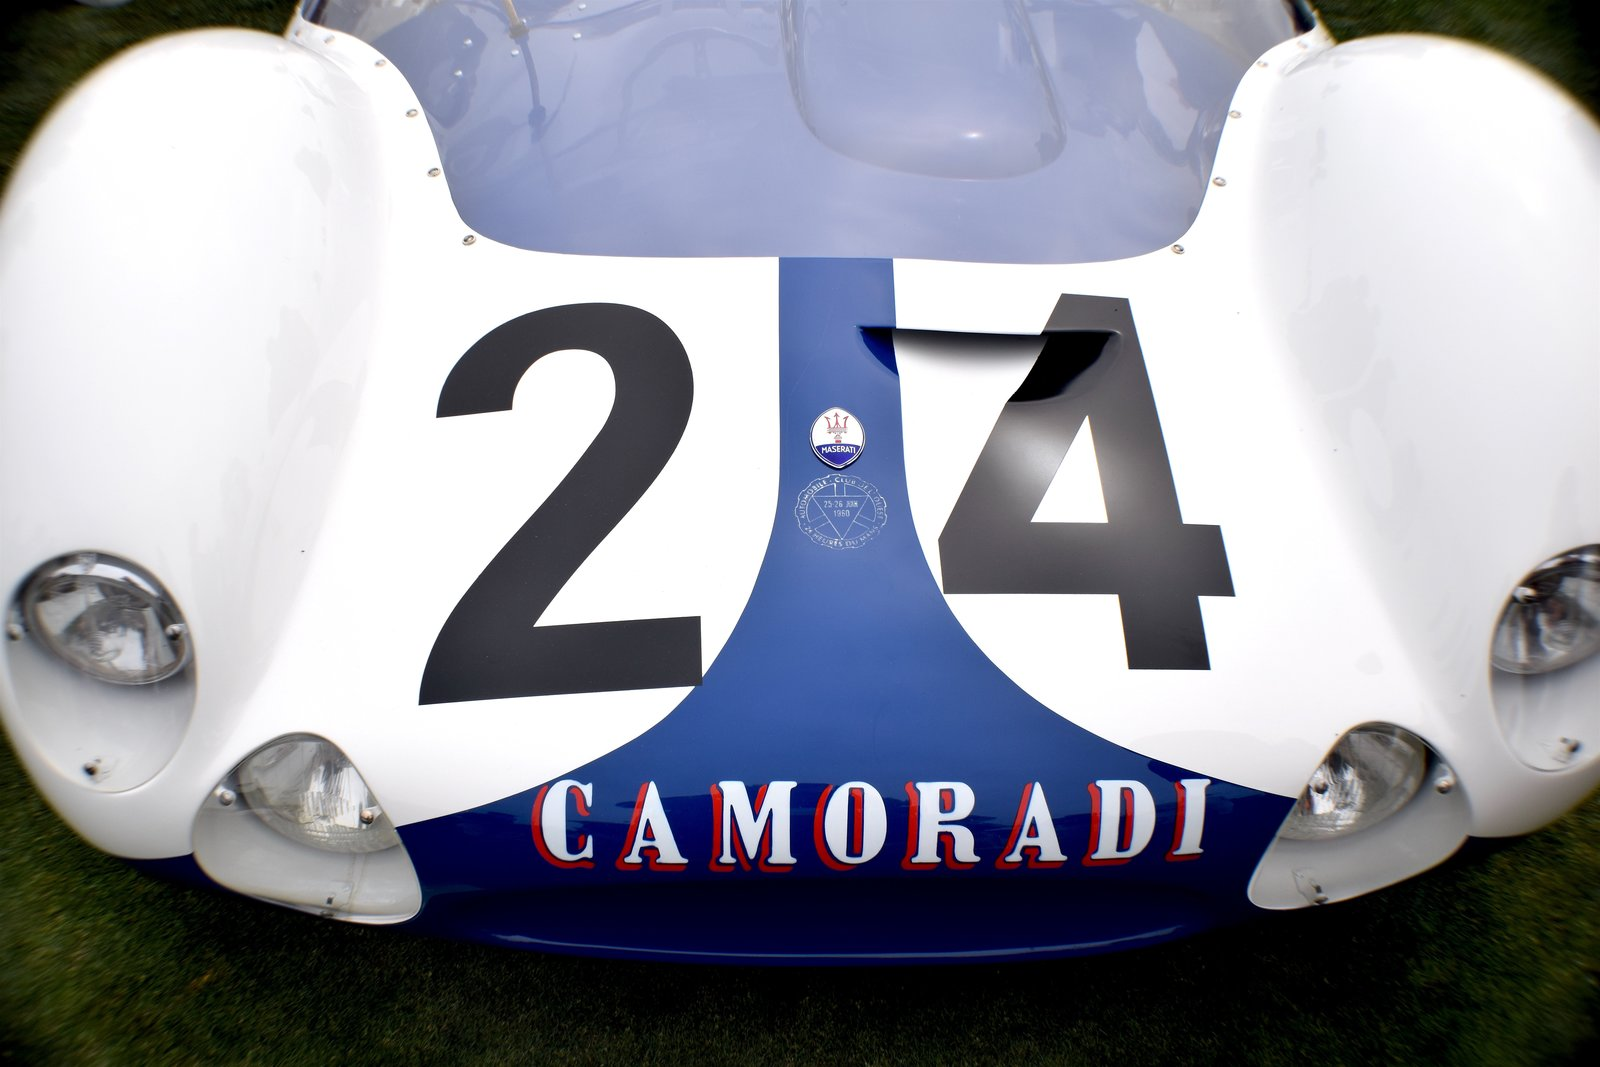 Towards the end of 1958, Maserati developed this front-engined, 2-liter prototype Tipo 60 at a time when many race car designers were starting to lean towards rear-engined designs. In 1959, it was tested for the first time on the road between Modena and Verona, and went on to partake in multiple races. It retired at the end of 1963.  Photo 5 of 10 in A Day at the Pebble Beach Concours d'Elegance Car Show